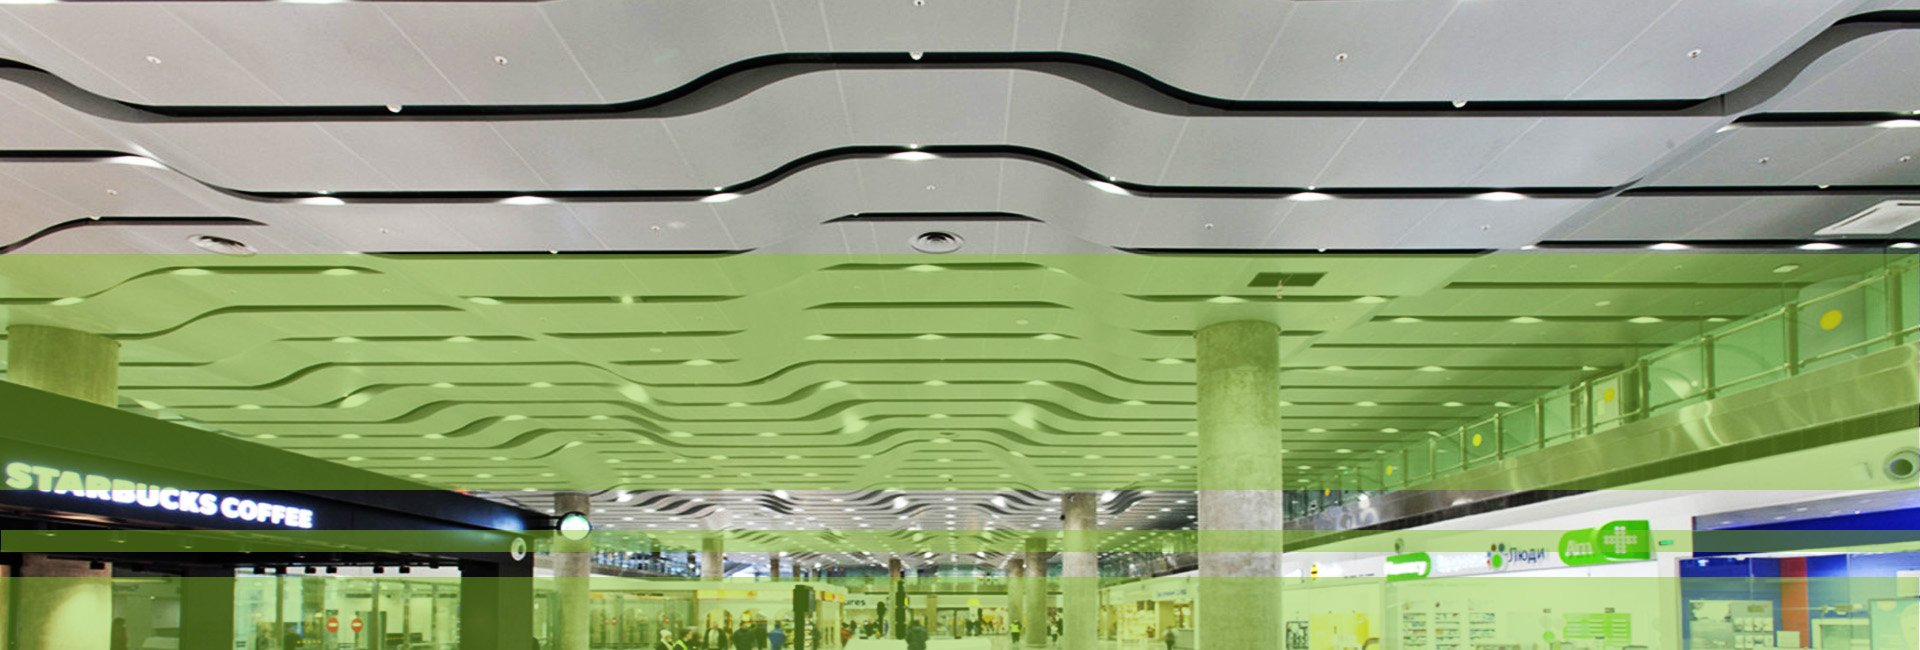 aluminium strip ceiling, aluminium clip in ceiling, aluminum false ceiling, aluminum baffle ceiling, aluminium grid ceiling, china manufacturer Manybest Building Material Co.,Ltd